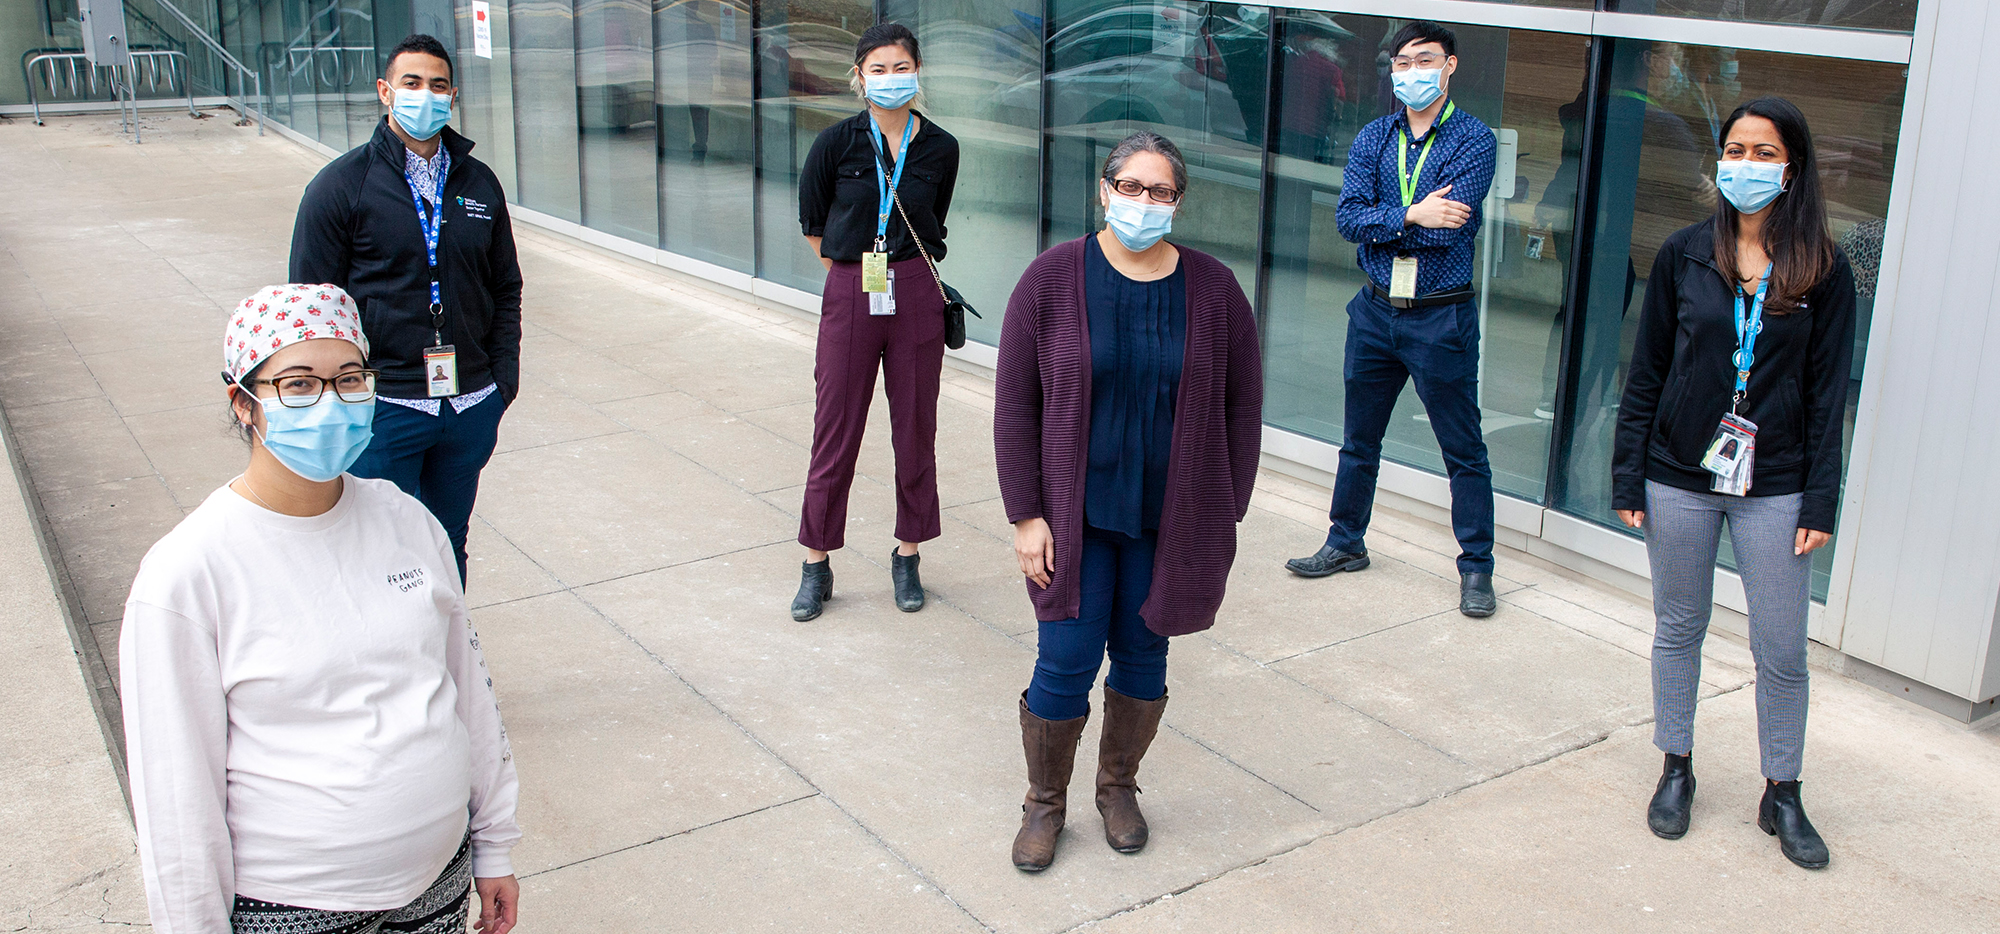 A team of healthcare providers wearing masks and socially distanced outside a hospital